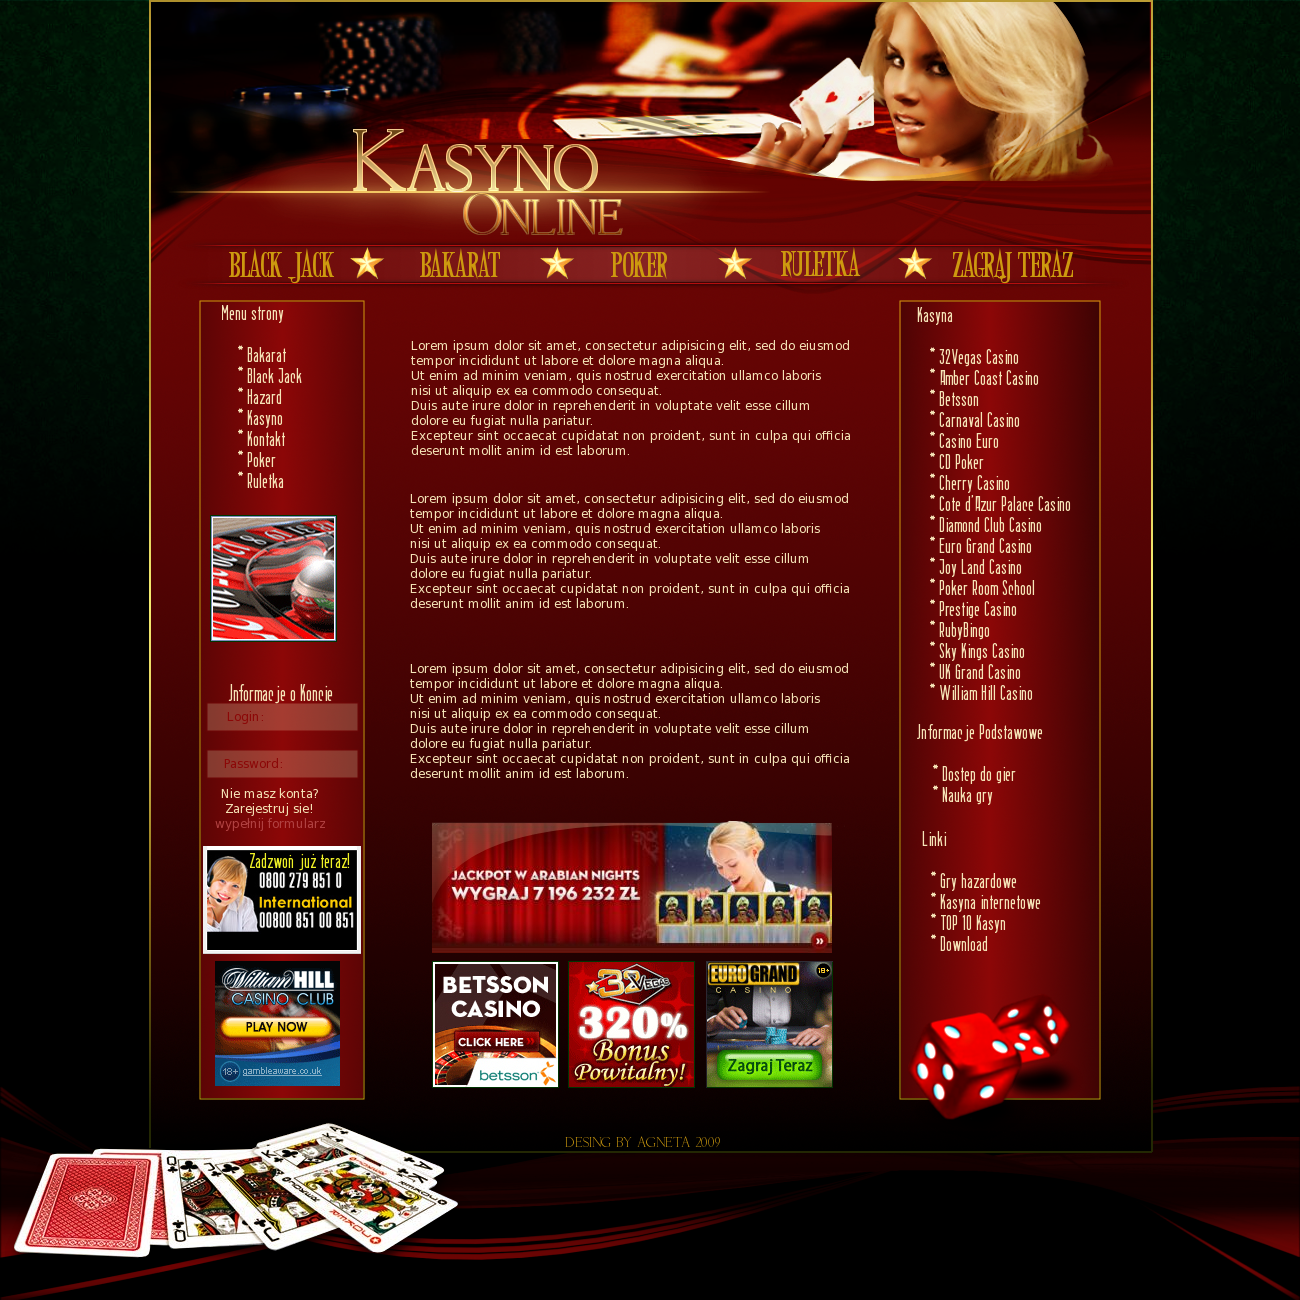 Kasyno Online layout